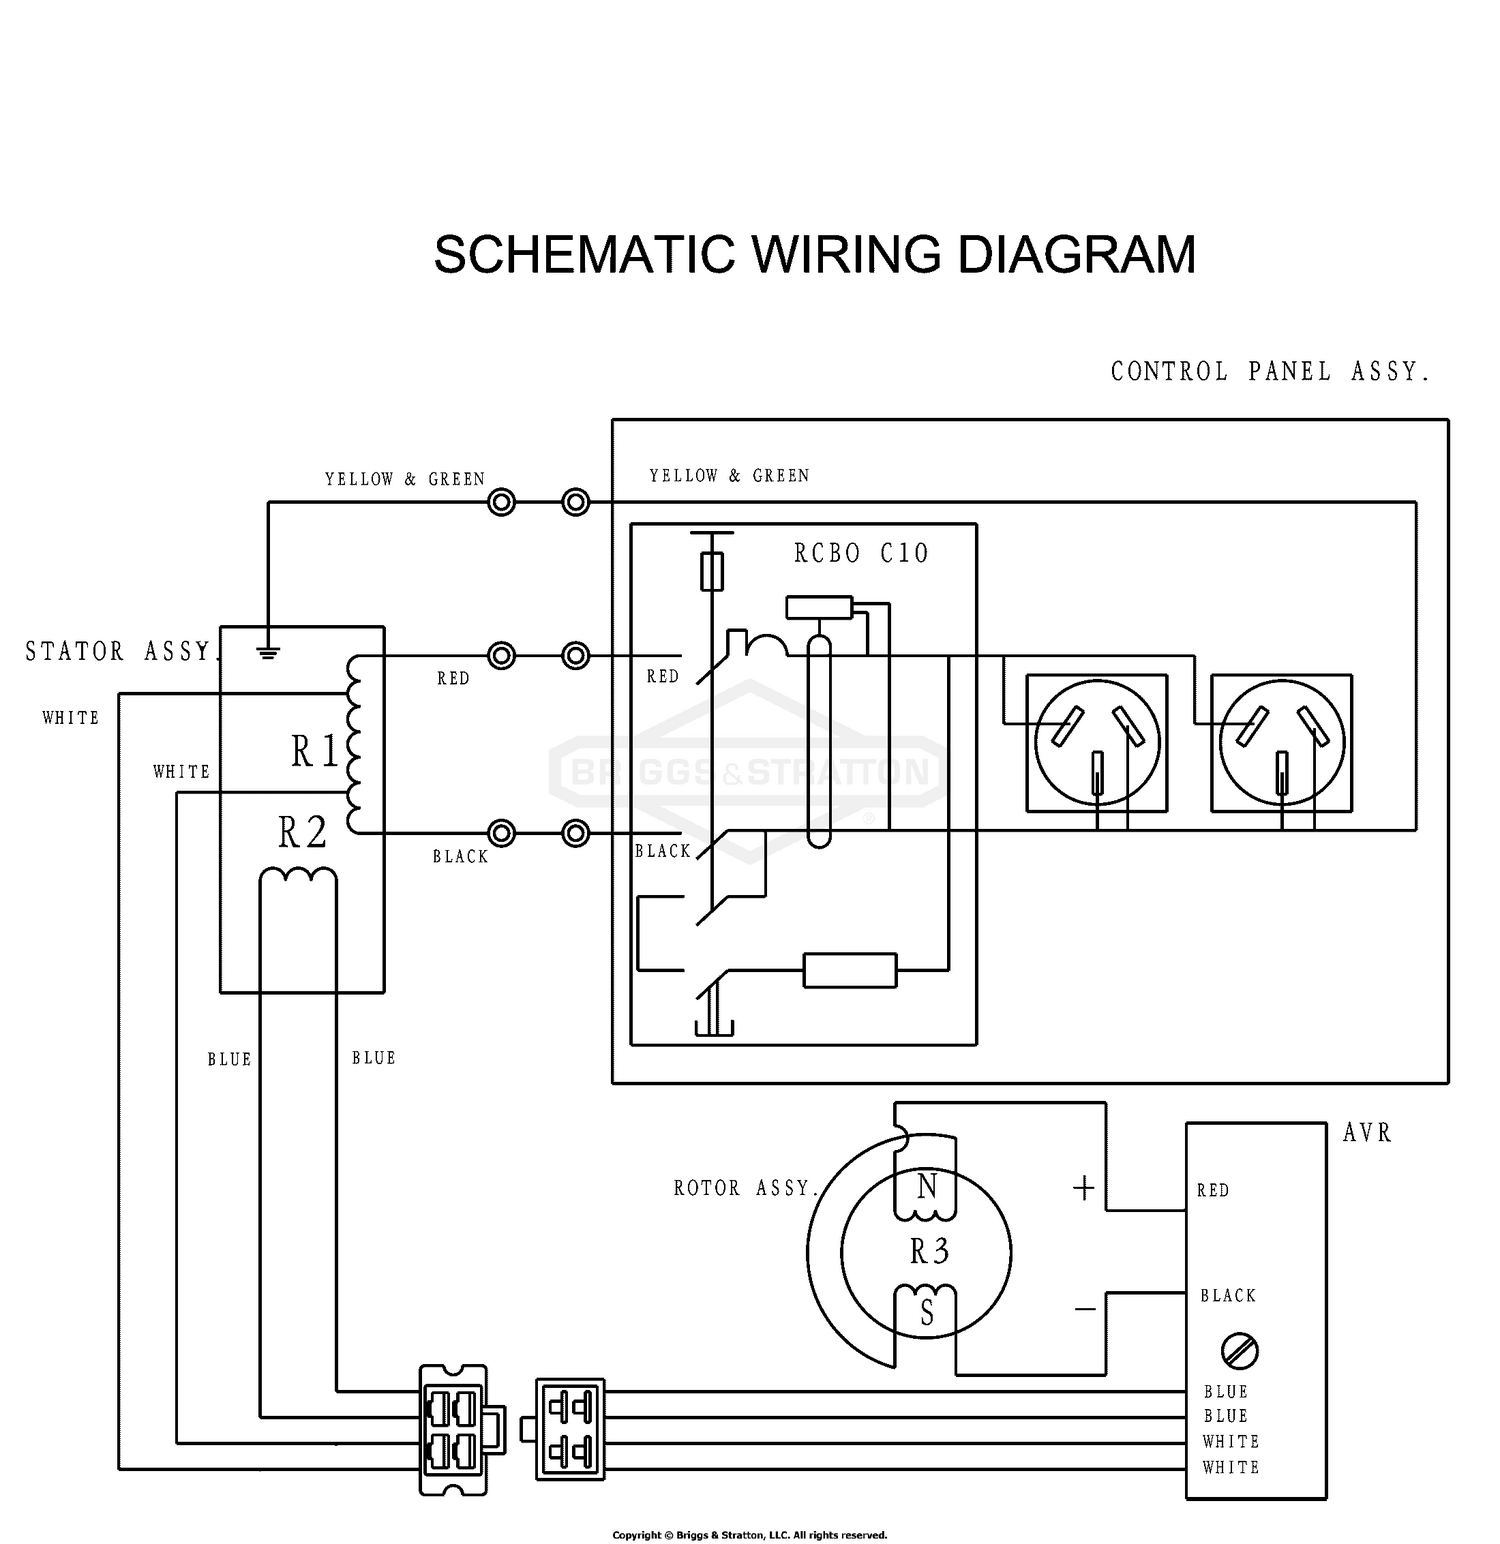 [NRIO_4796]   Briggs & Stratton Power Products_DEL_26072017021729 MGRP3527-00 -  ProMax 3500/2700 Electrical Schematic/Wiring Diagram (1760865) | Briggs Wiring Schematic |  | Weingartz